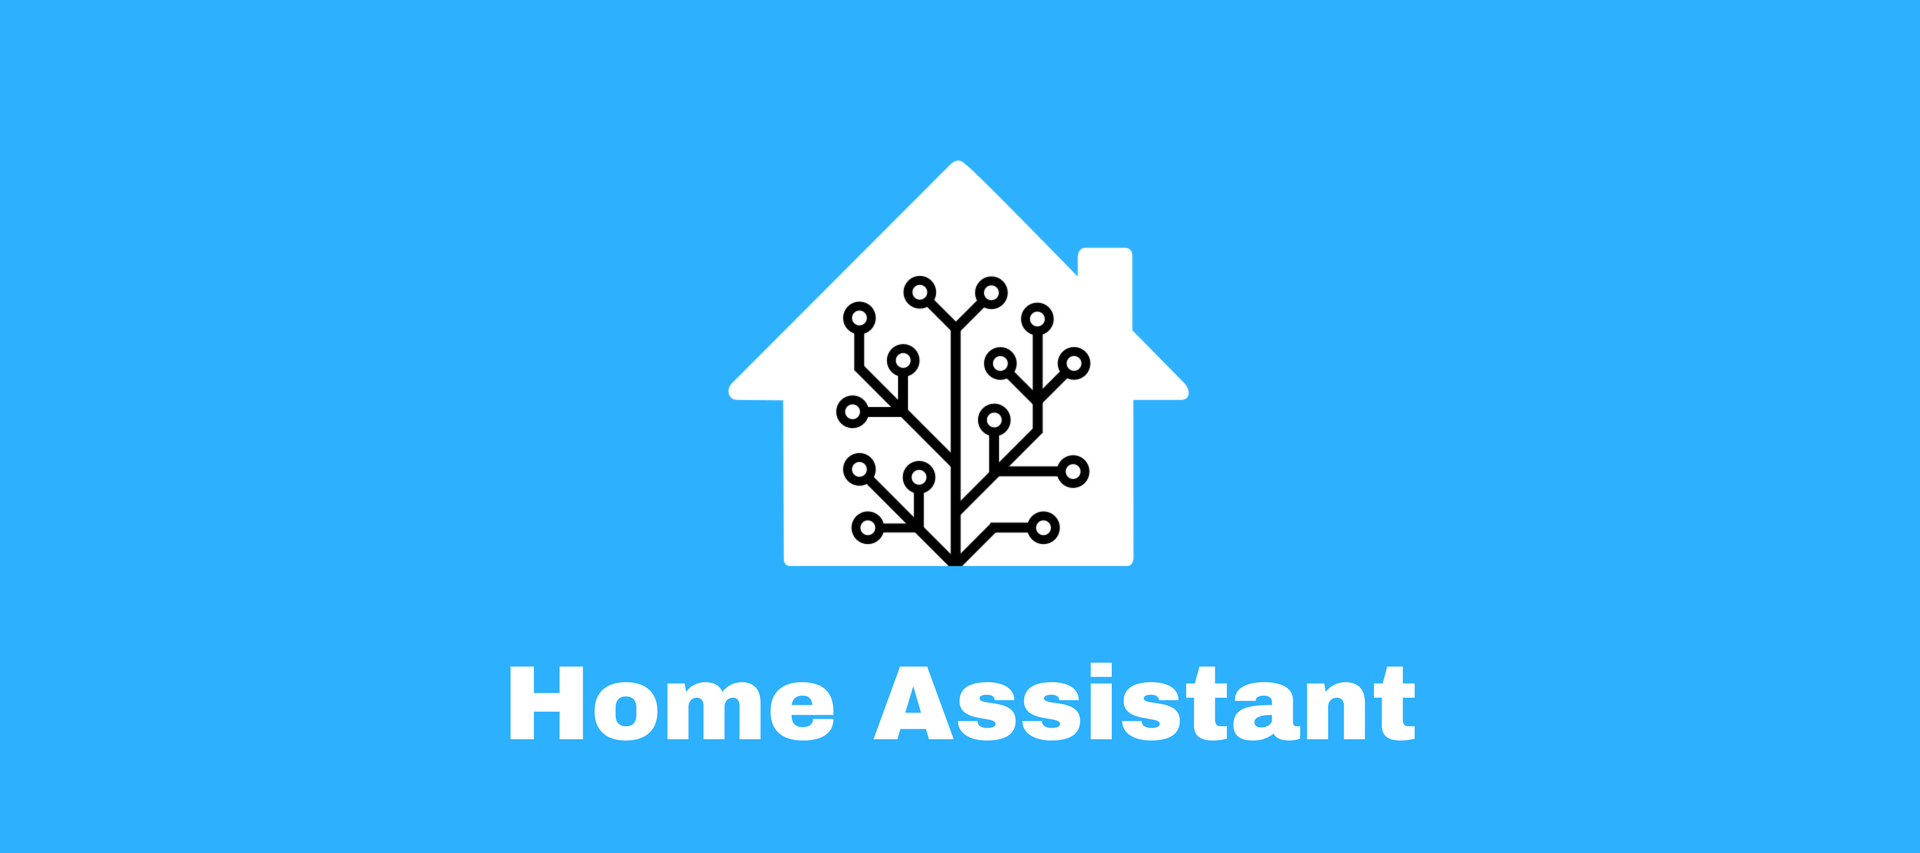 Components Home Assistant